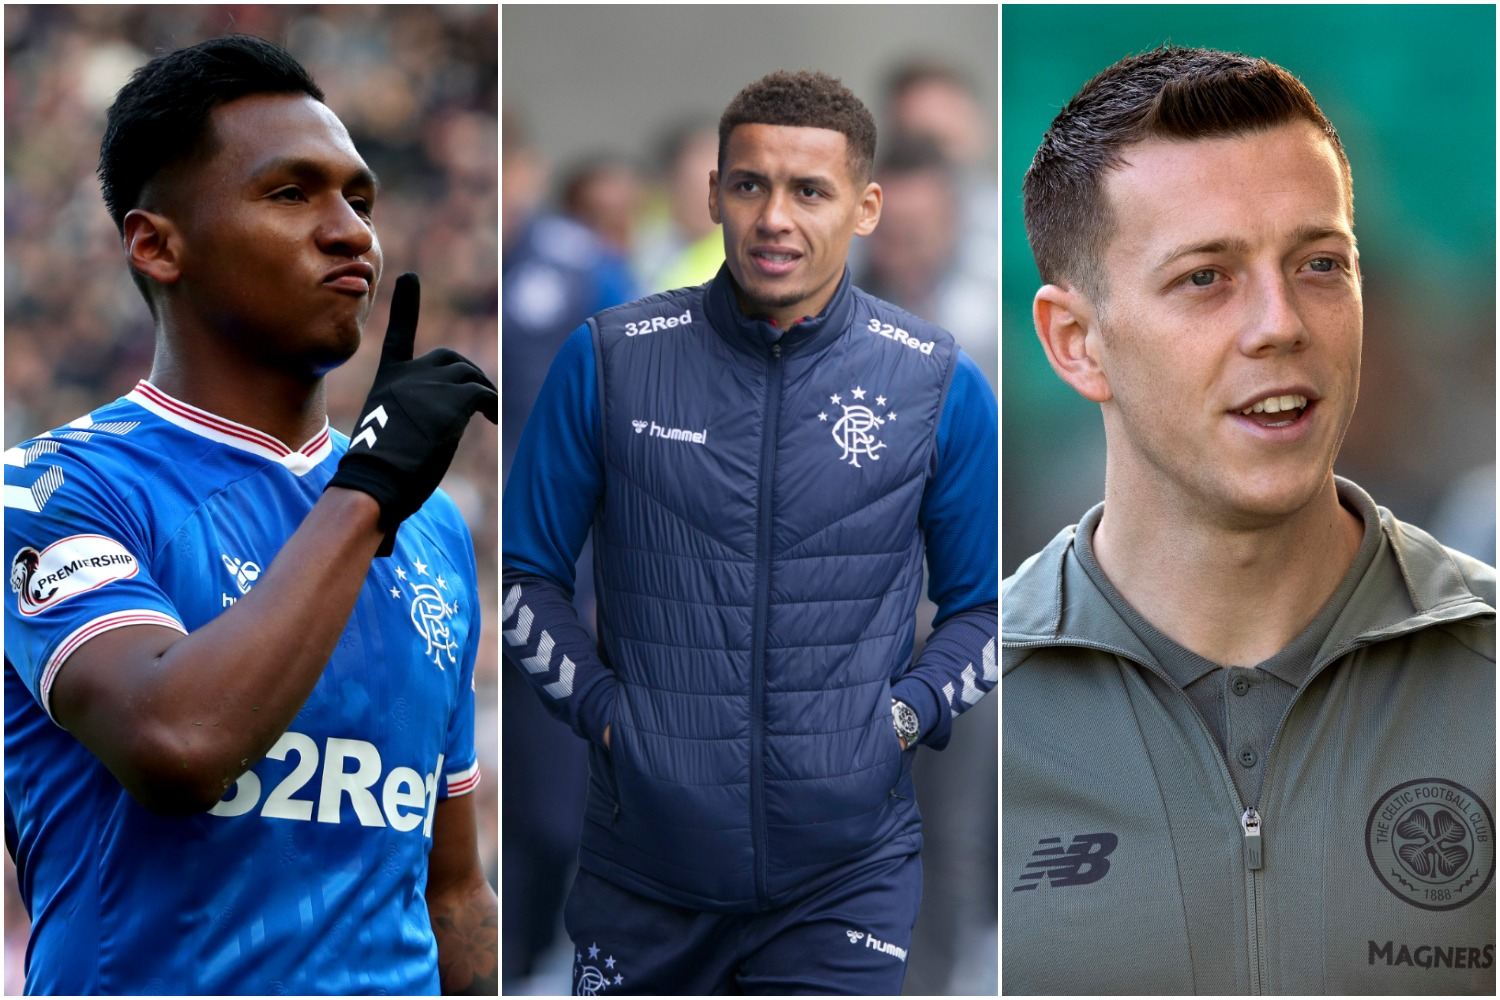 Bulletin: Crystal Palace 'prepare £20m bid for Morelos' | Tavernier attracts interest from EPL | Celtic legend urges club to hand McGregor bumper deal